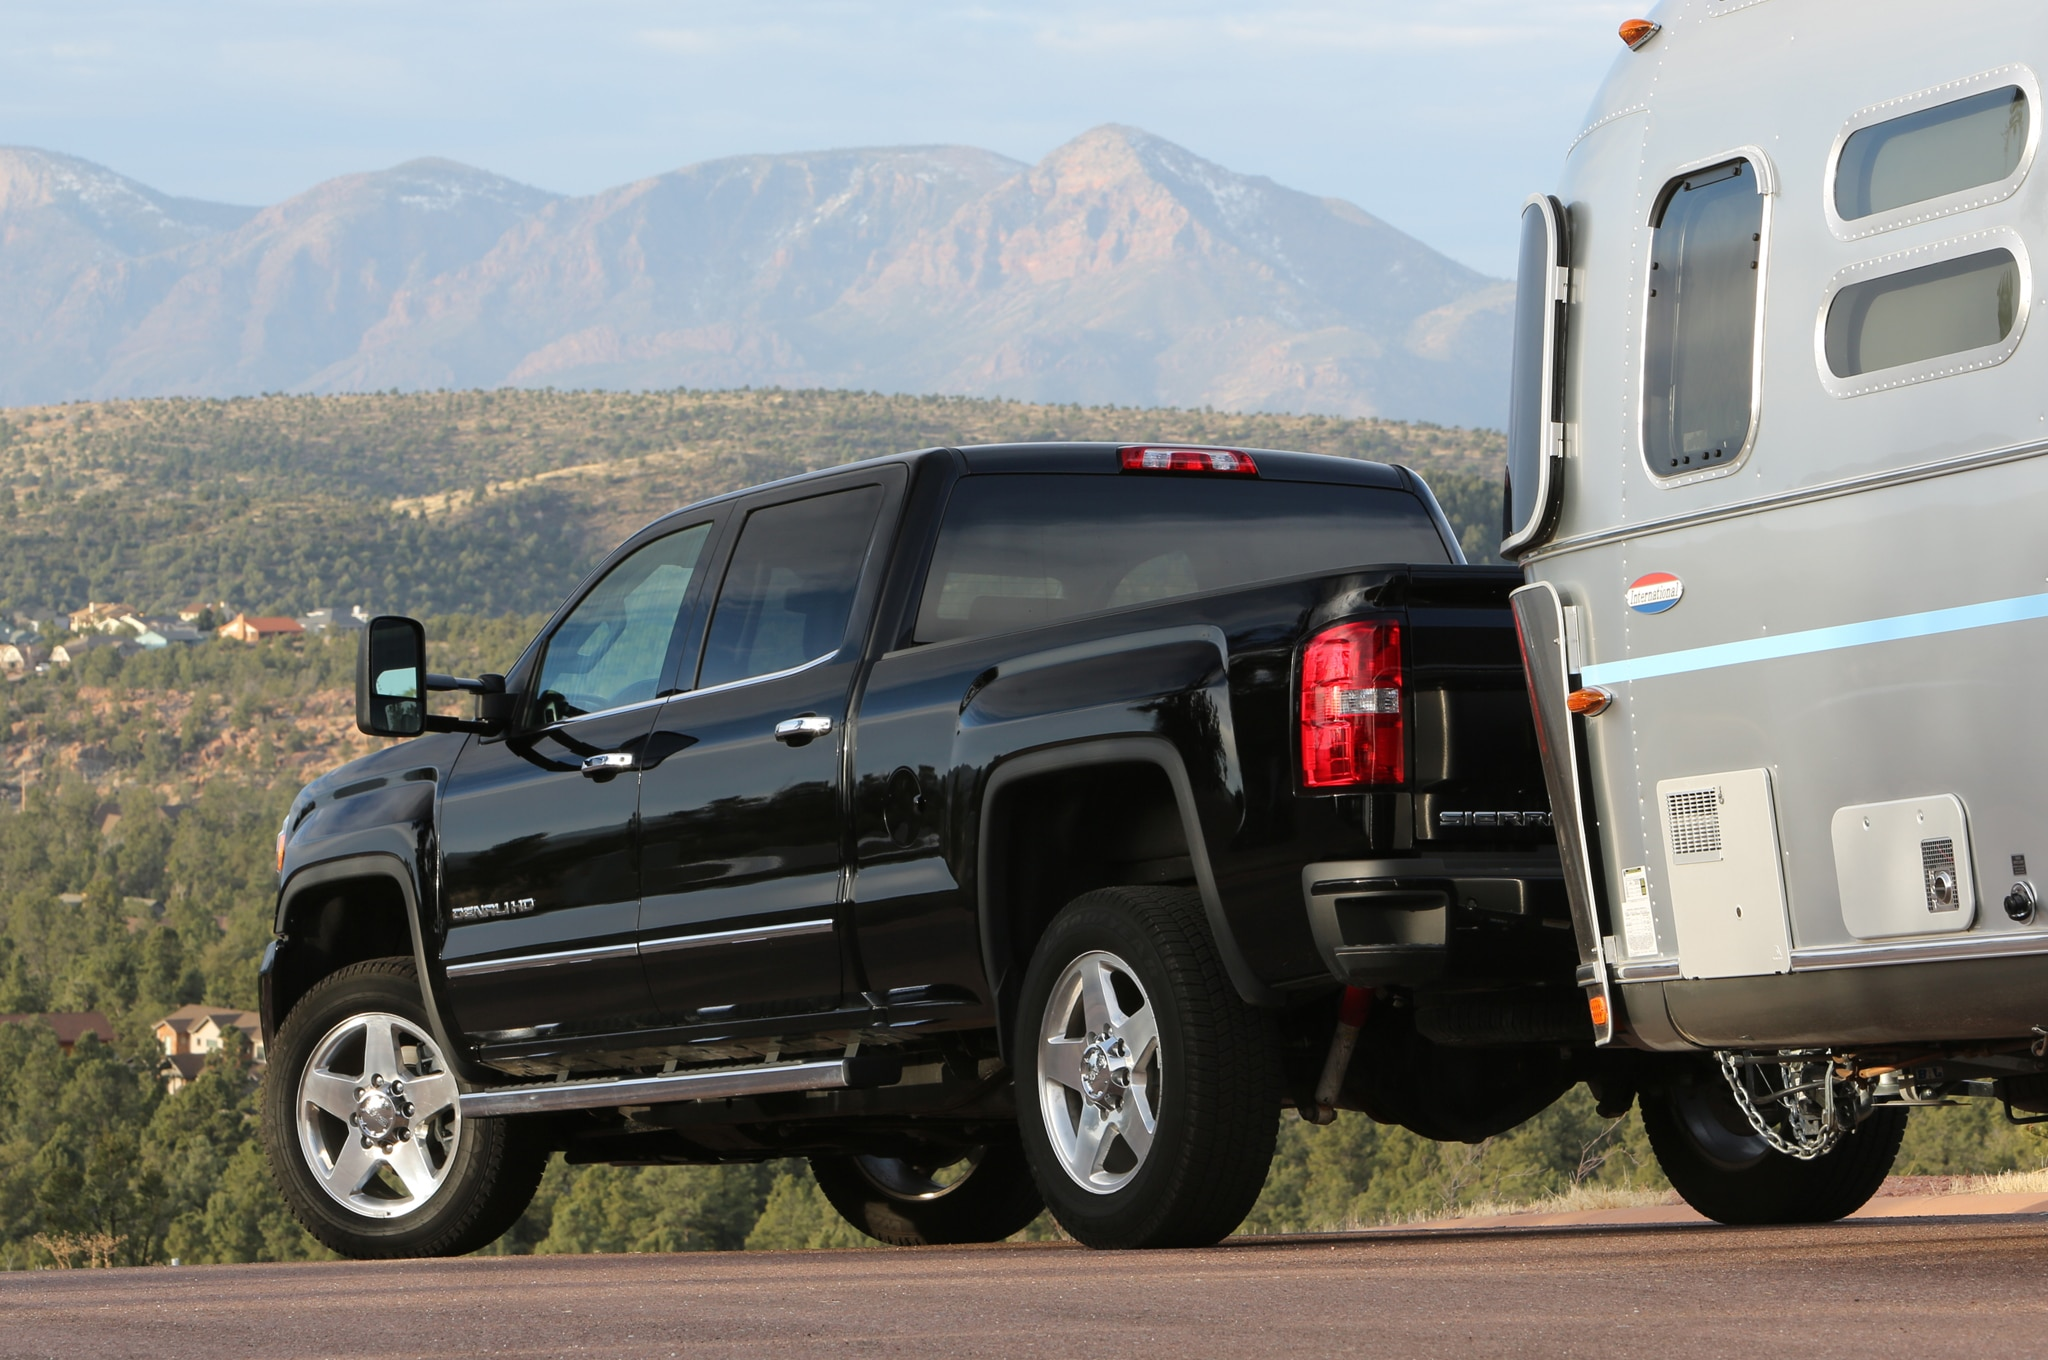 2015 GMC Sierra 2500HD Denali rear view with camper